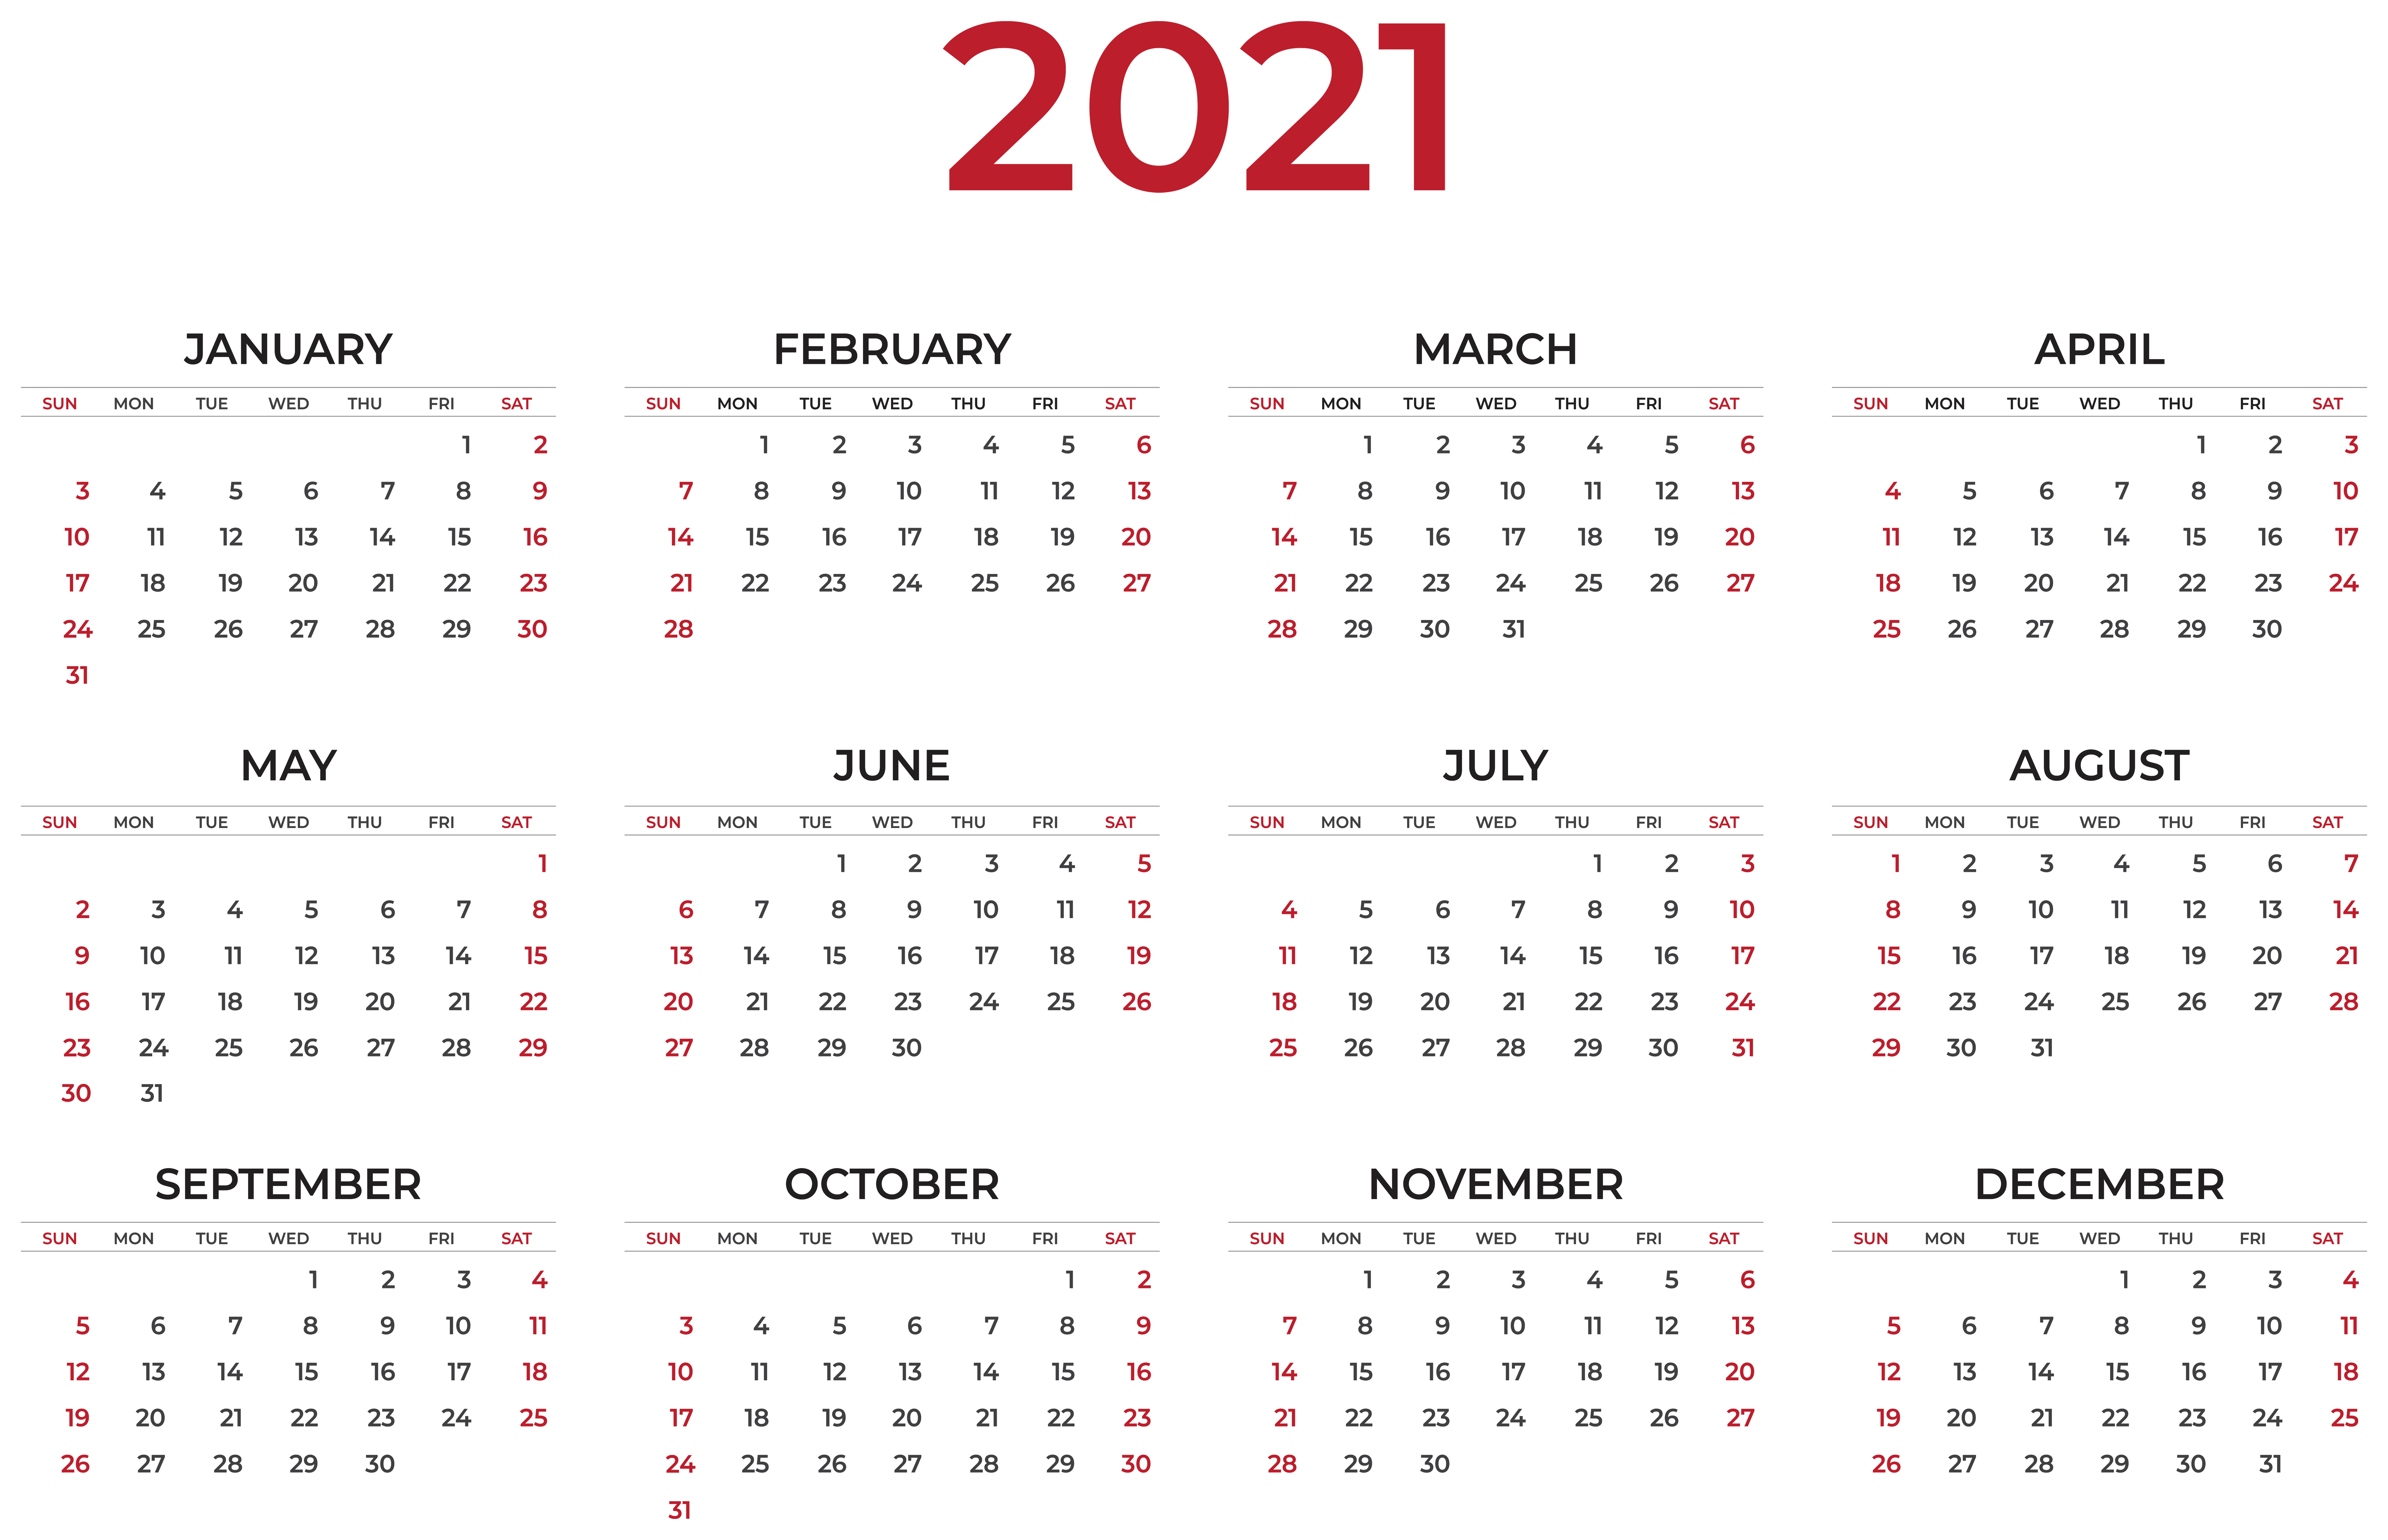 2021 Calendar Transparent Clipart Gallery Yopriceville High Quality Images And Transparent Png Free Clipart Clip Art 2021 Calendar Free Clip Art